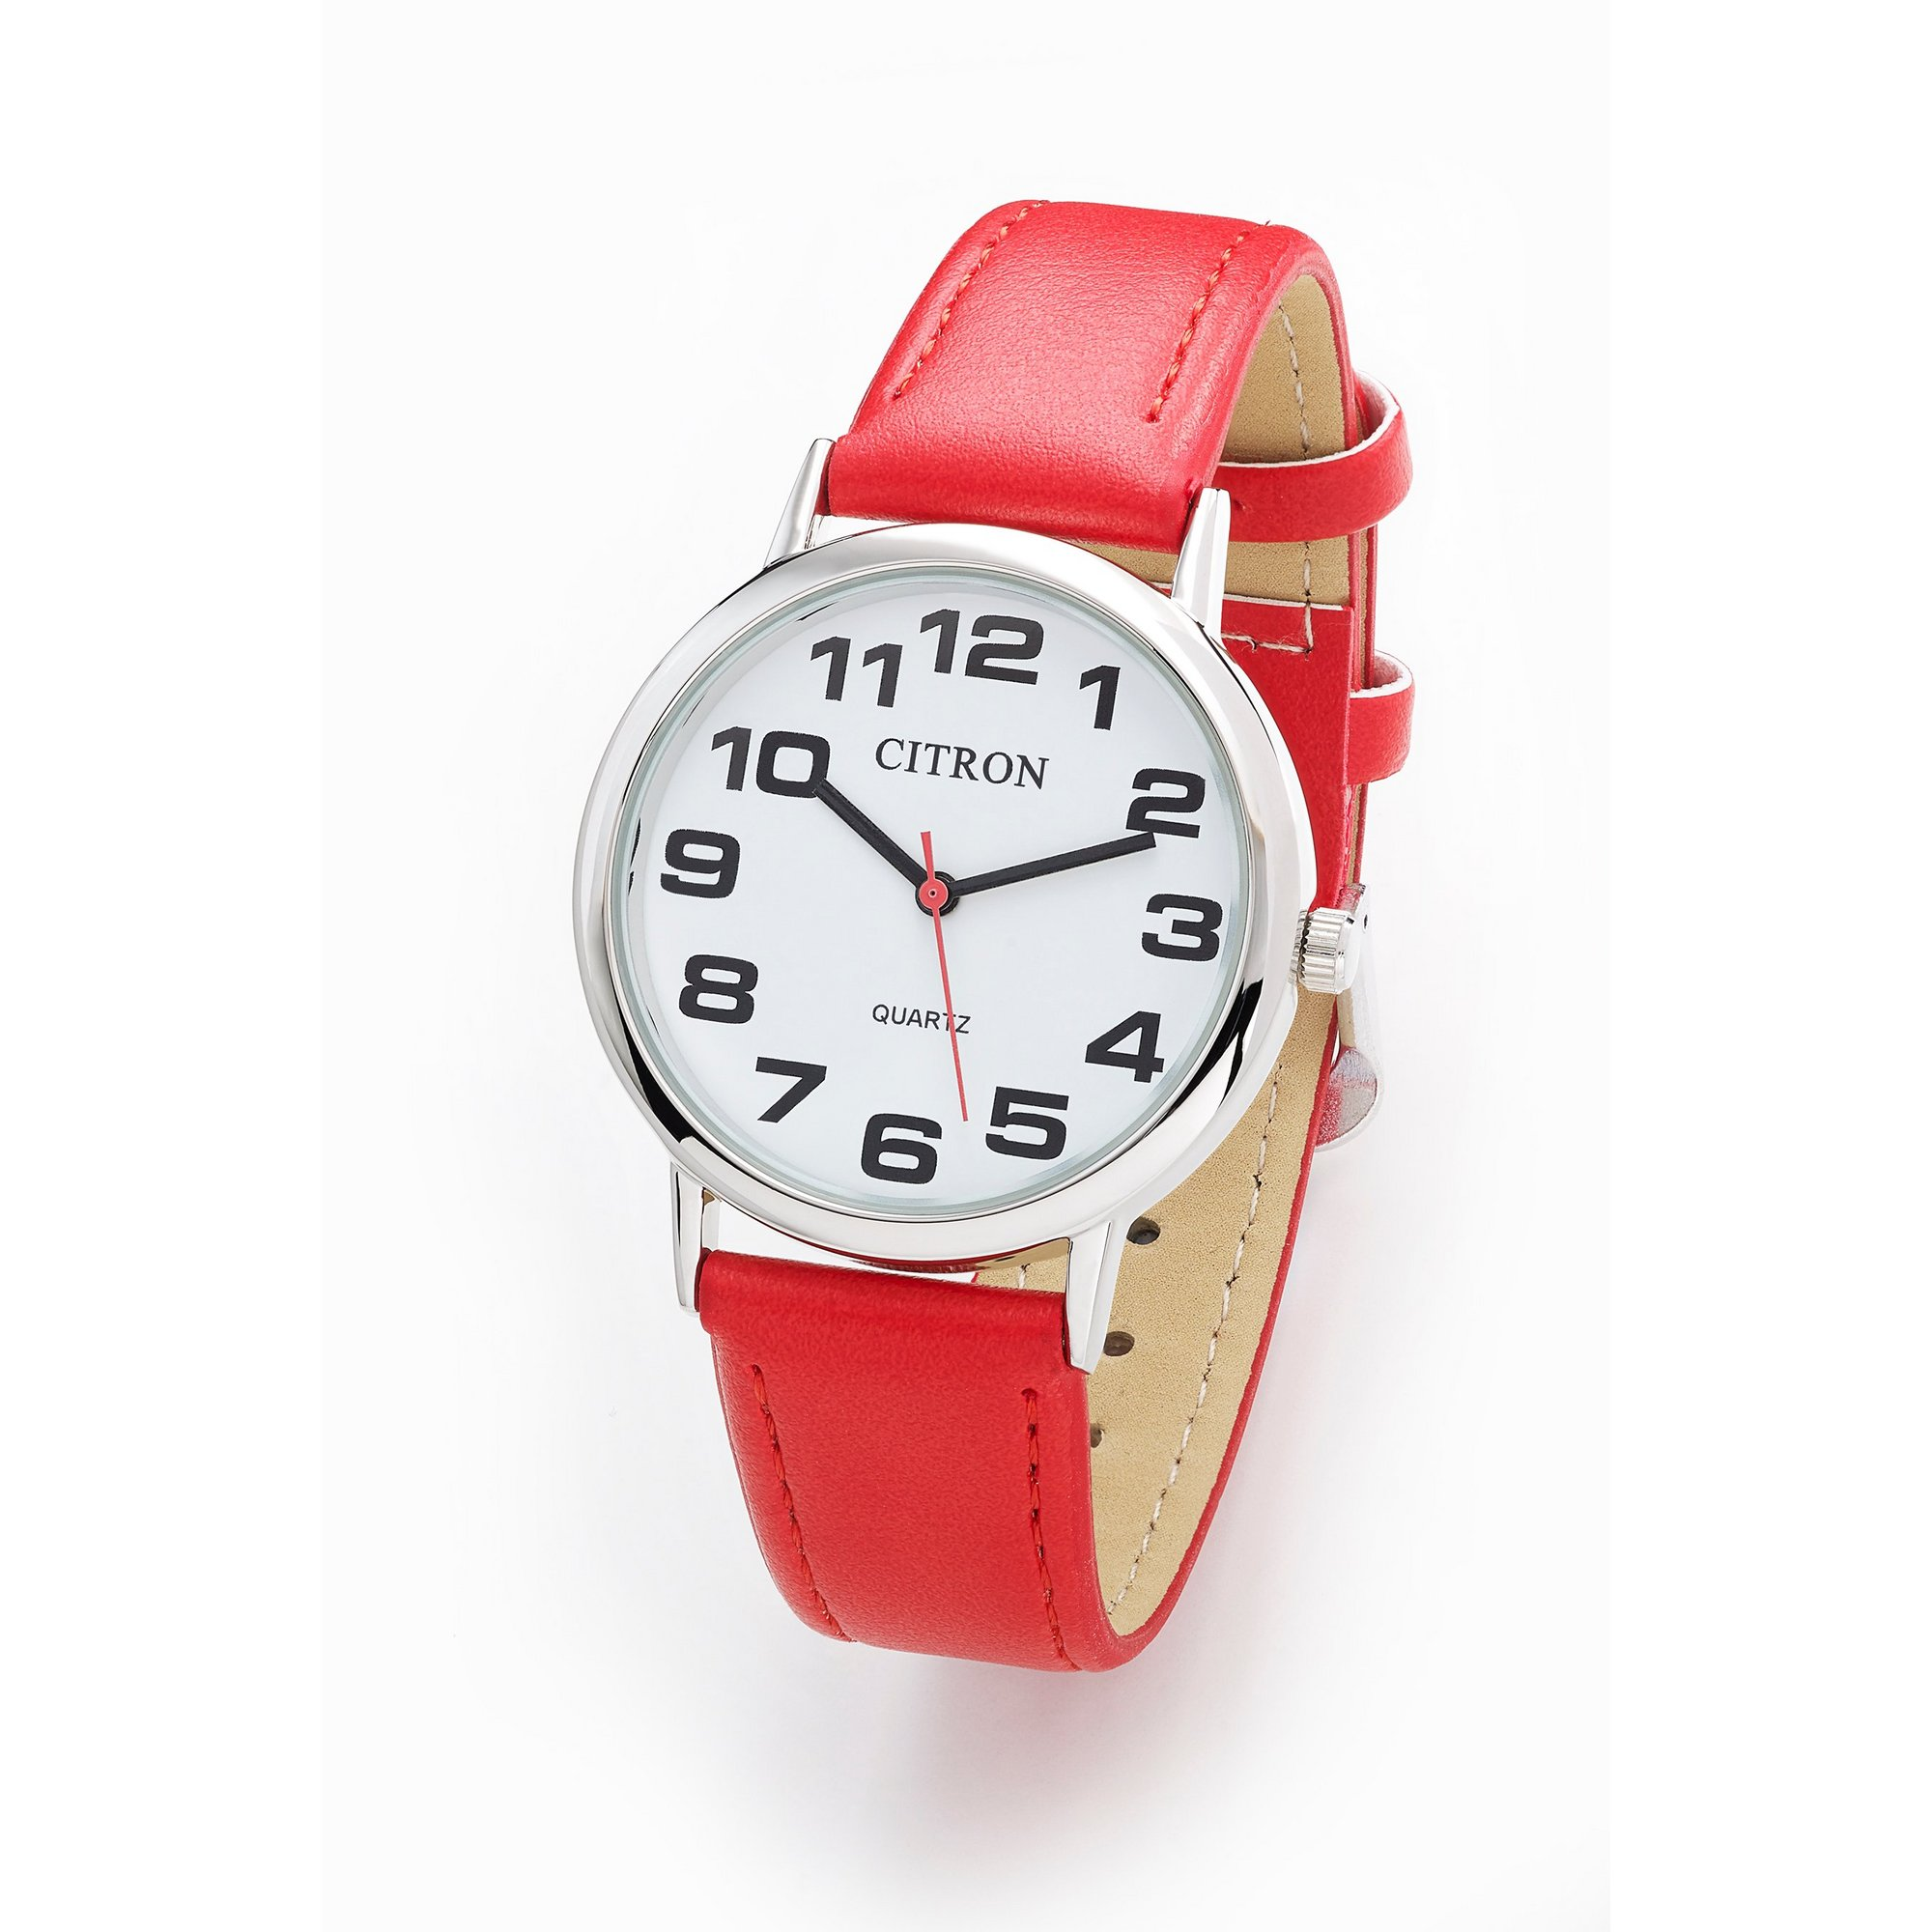 Image of Citron Red Strap Watch